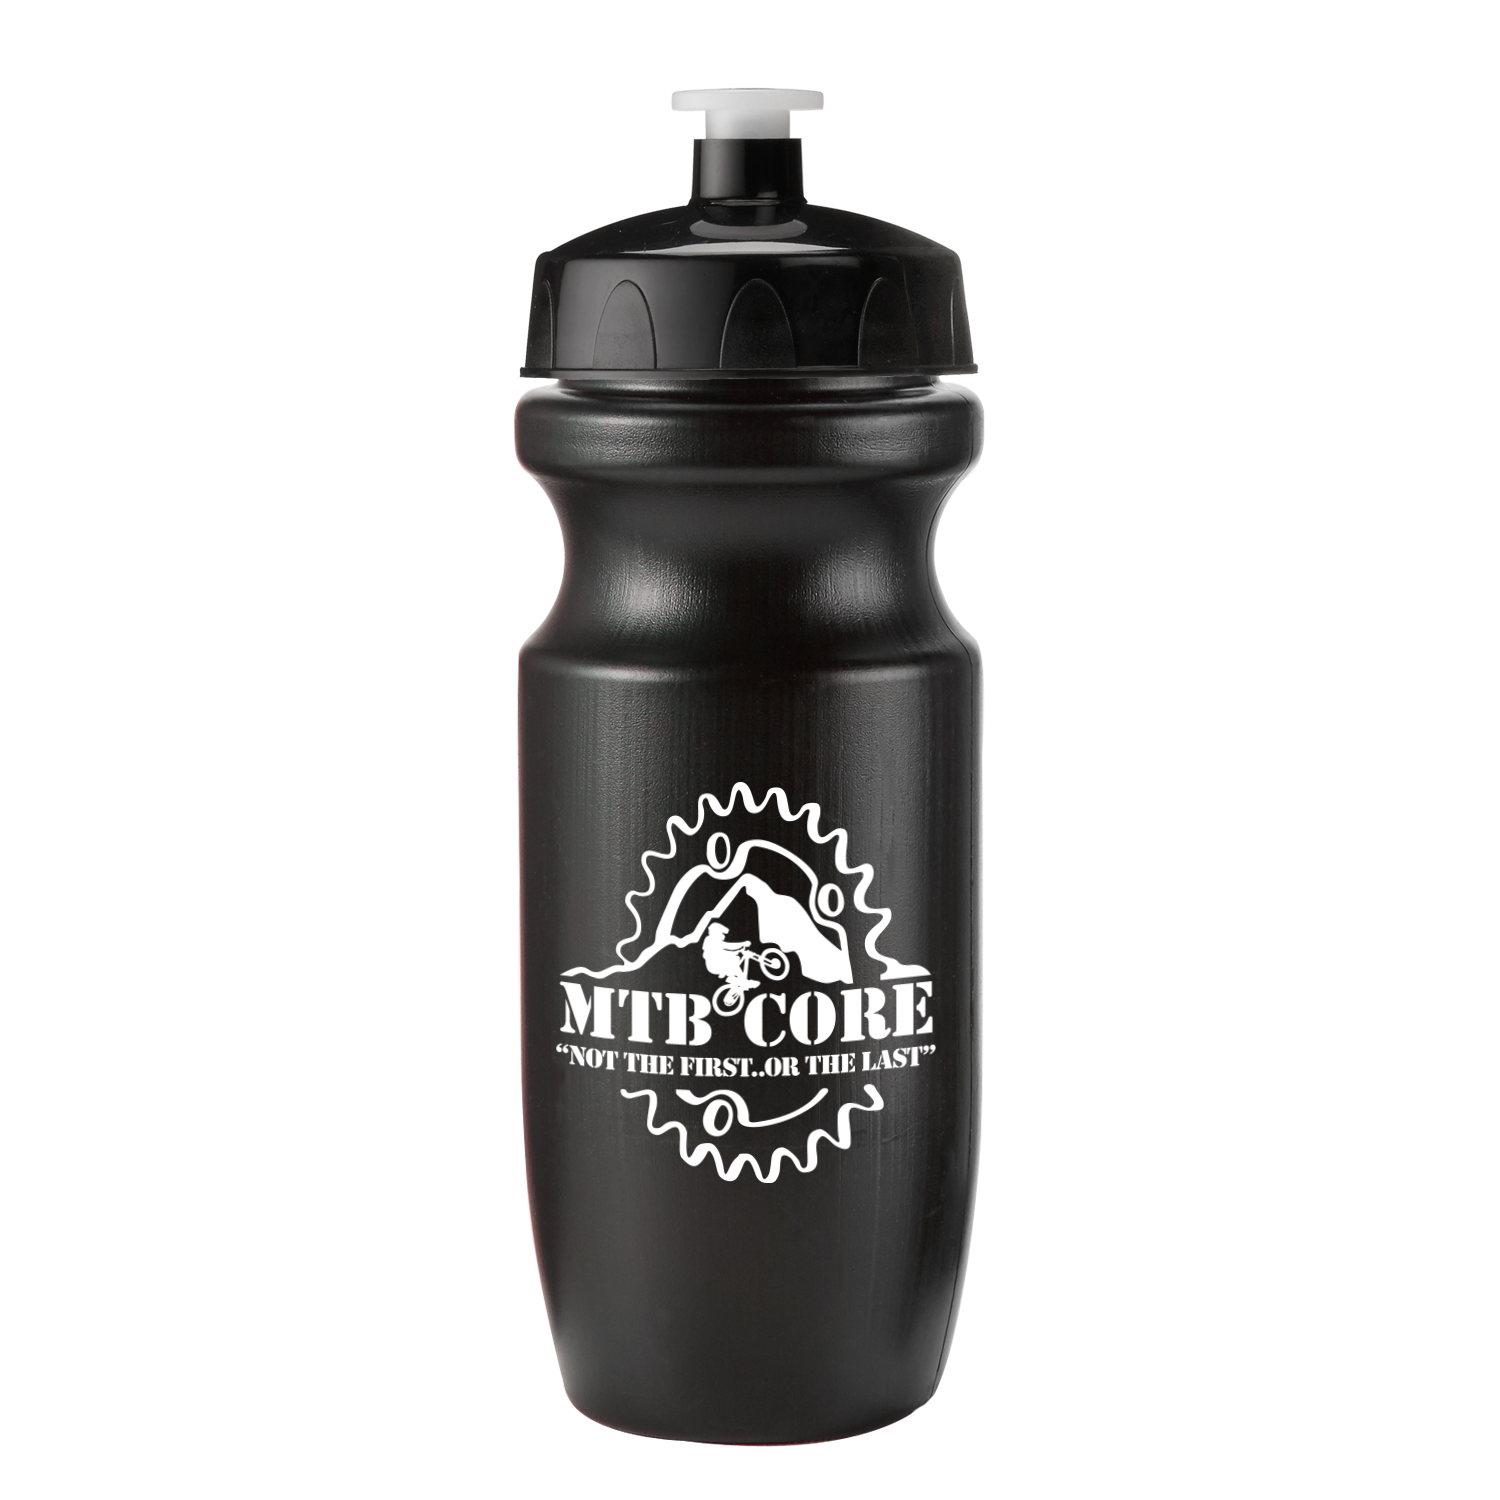 20 oz. Bike Bottle